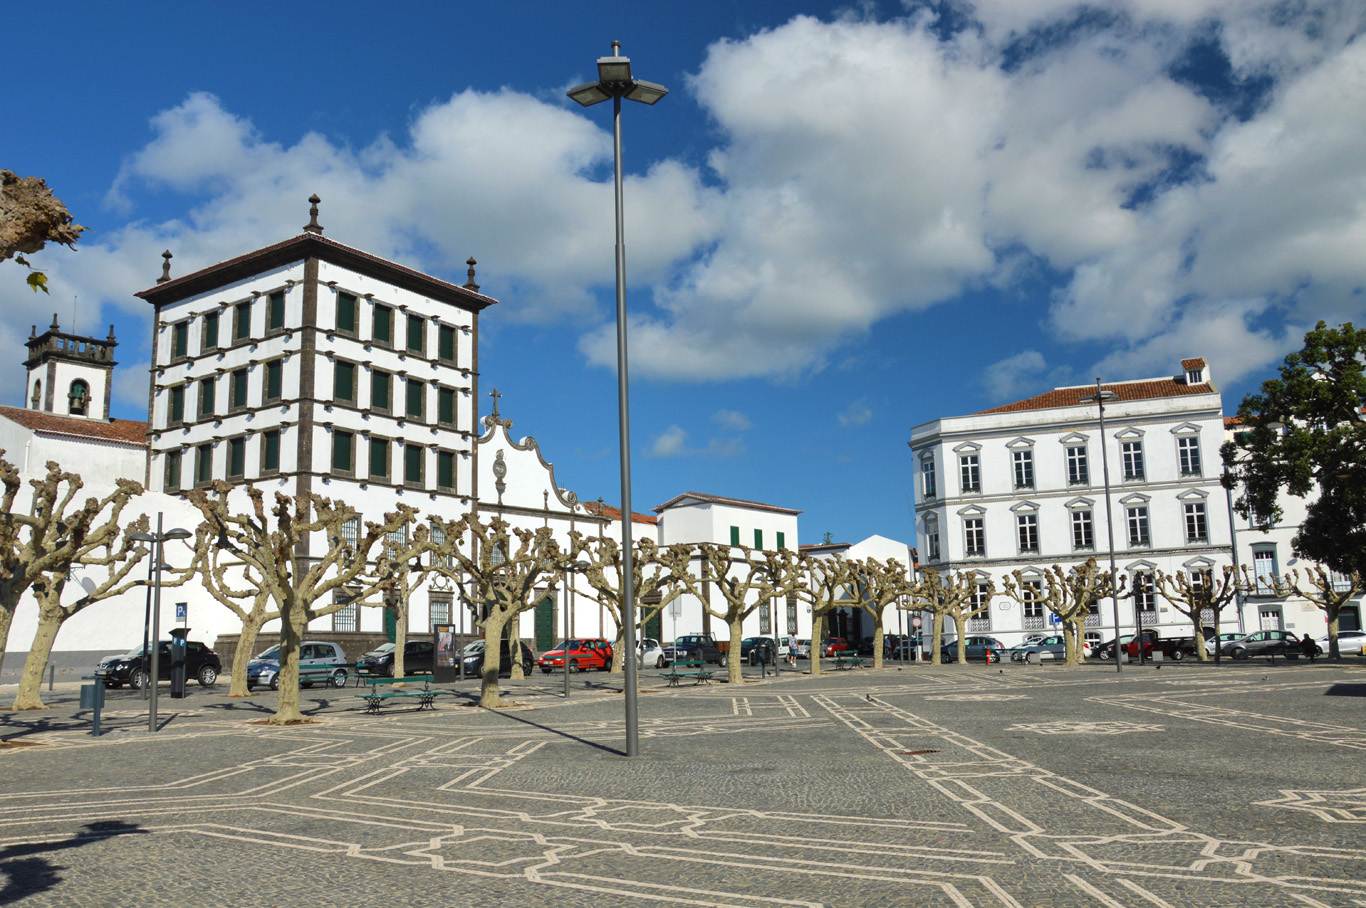 Convent of Our Lady of Hope and Praca 5 Outubro